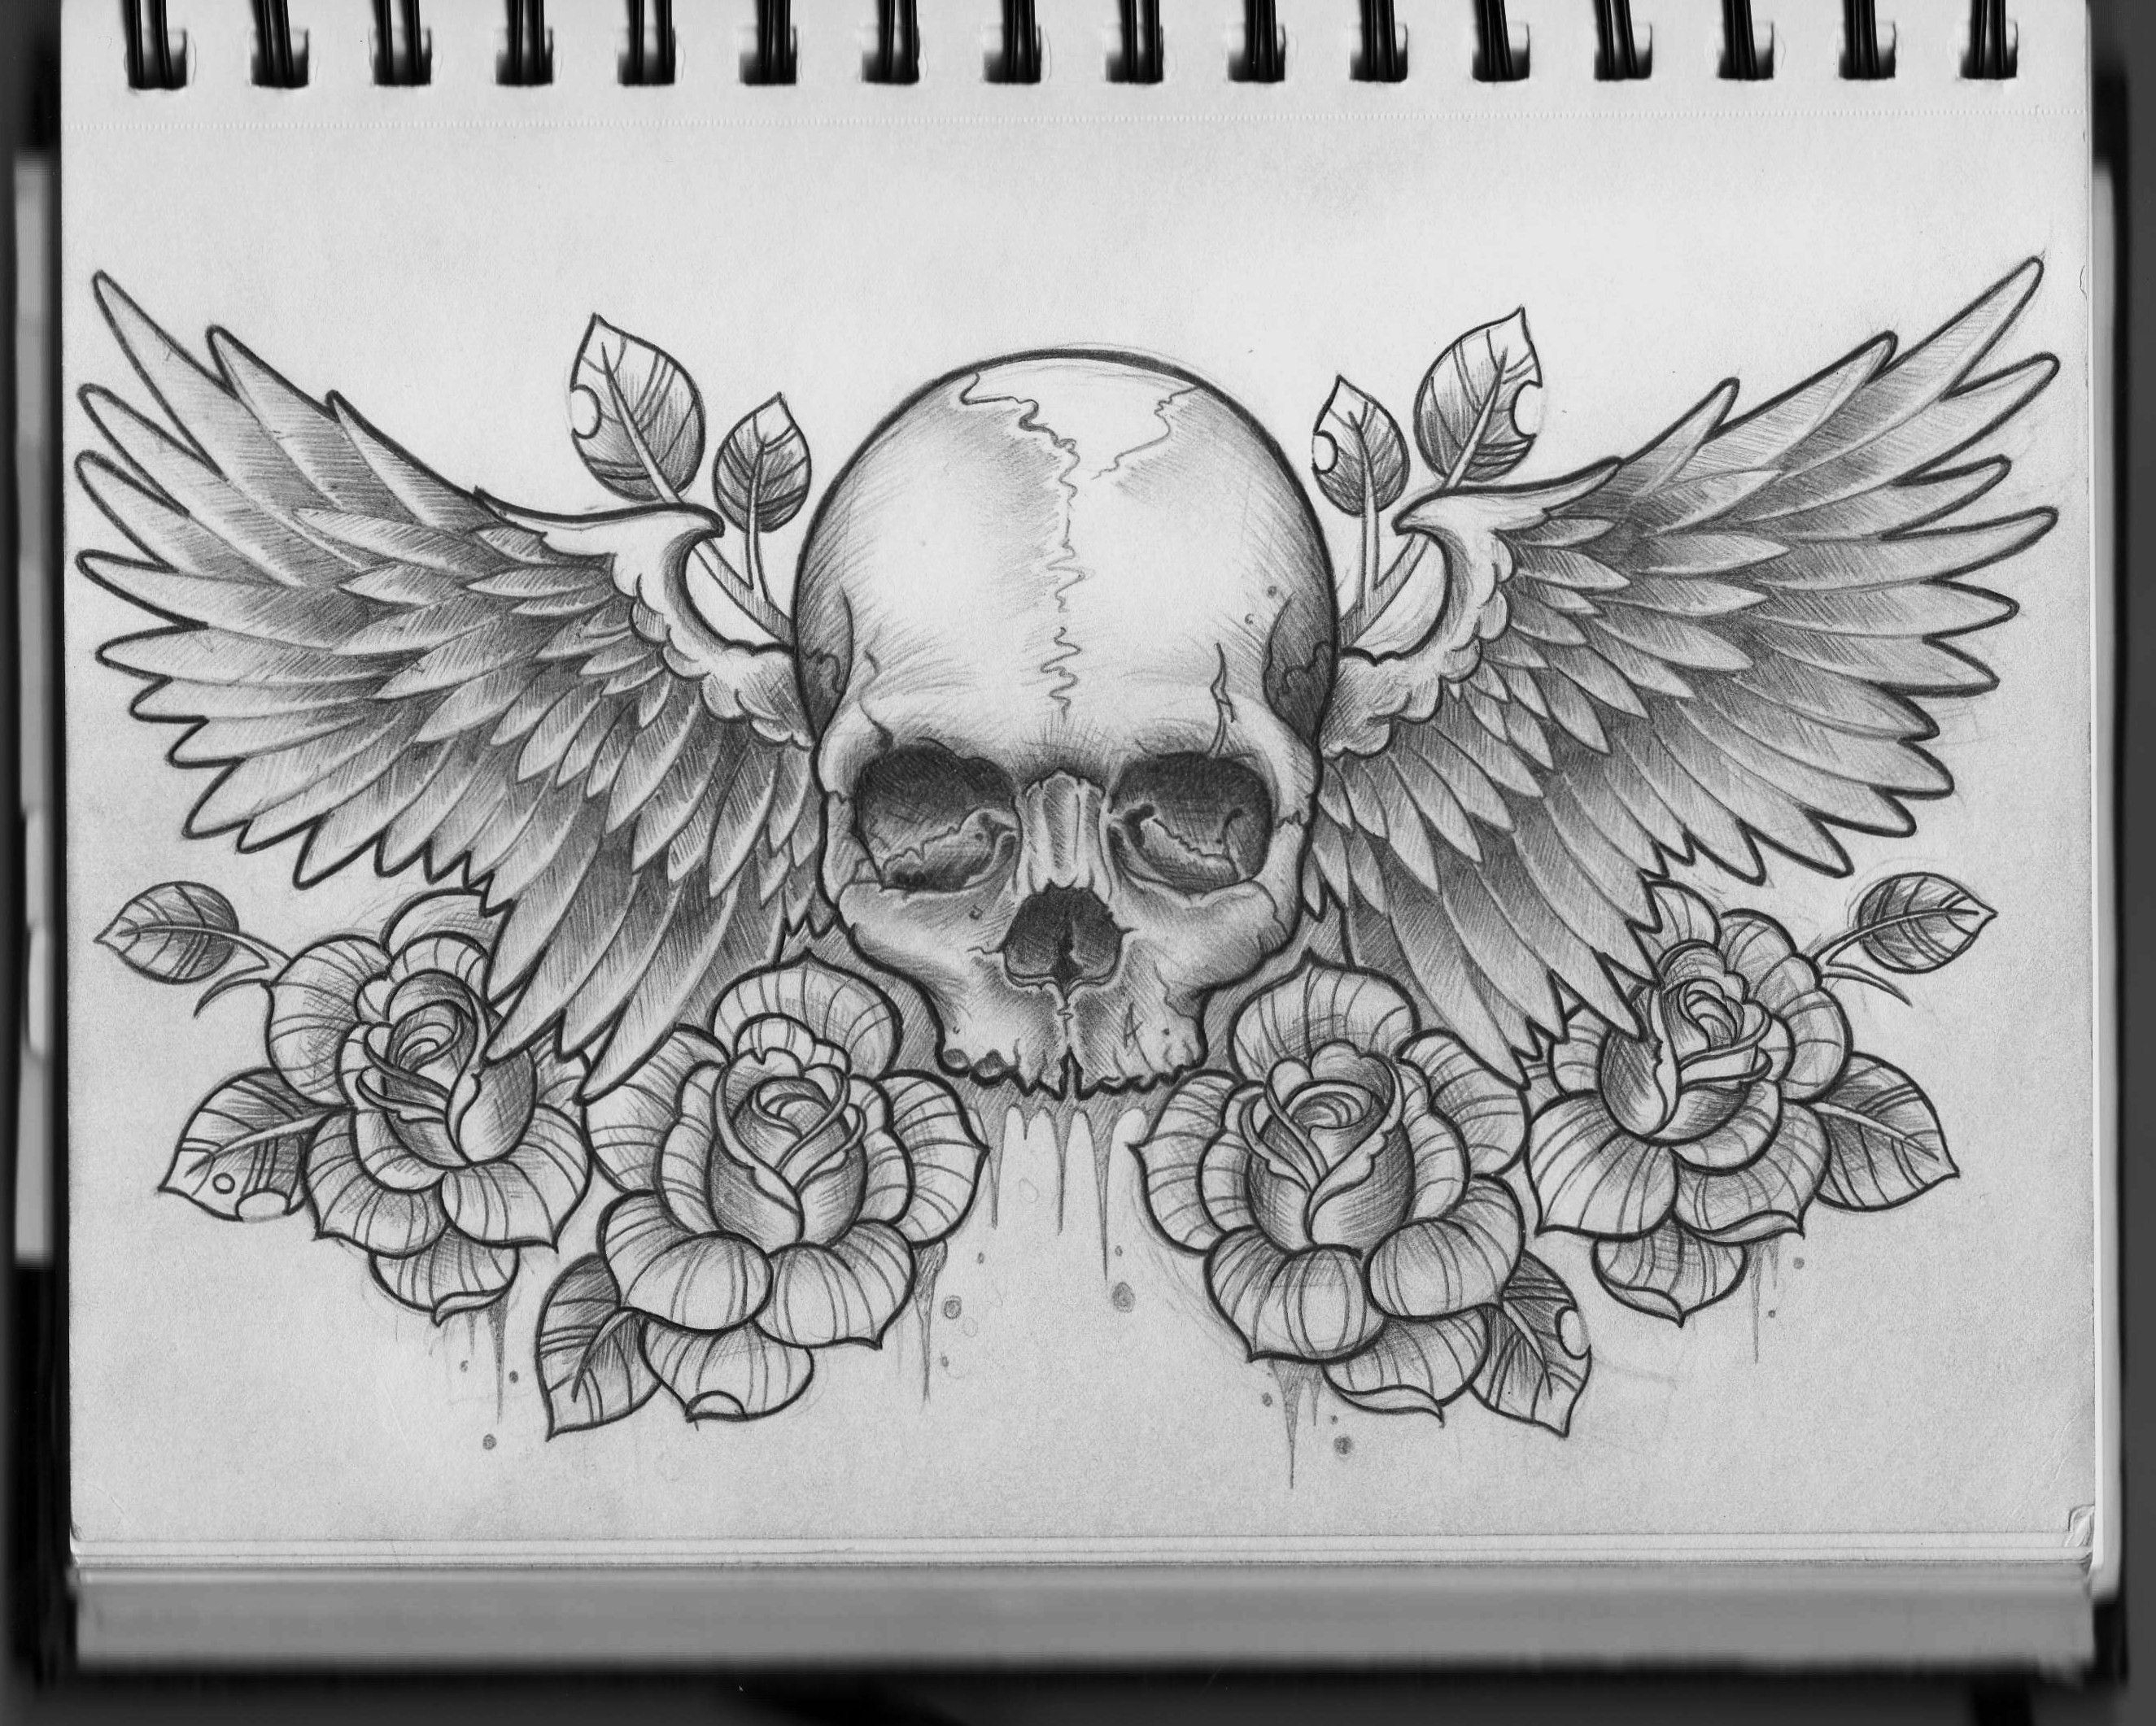 Skull And Wings Chest Design Ink Filigree Tattoo Tattoos Chest within size 2650 X 2122